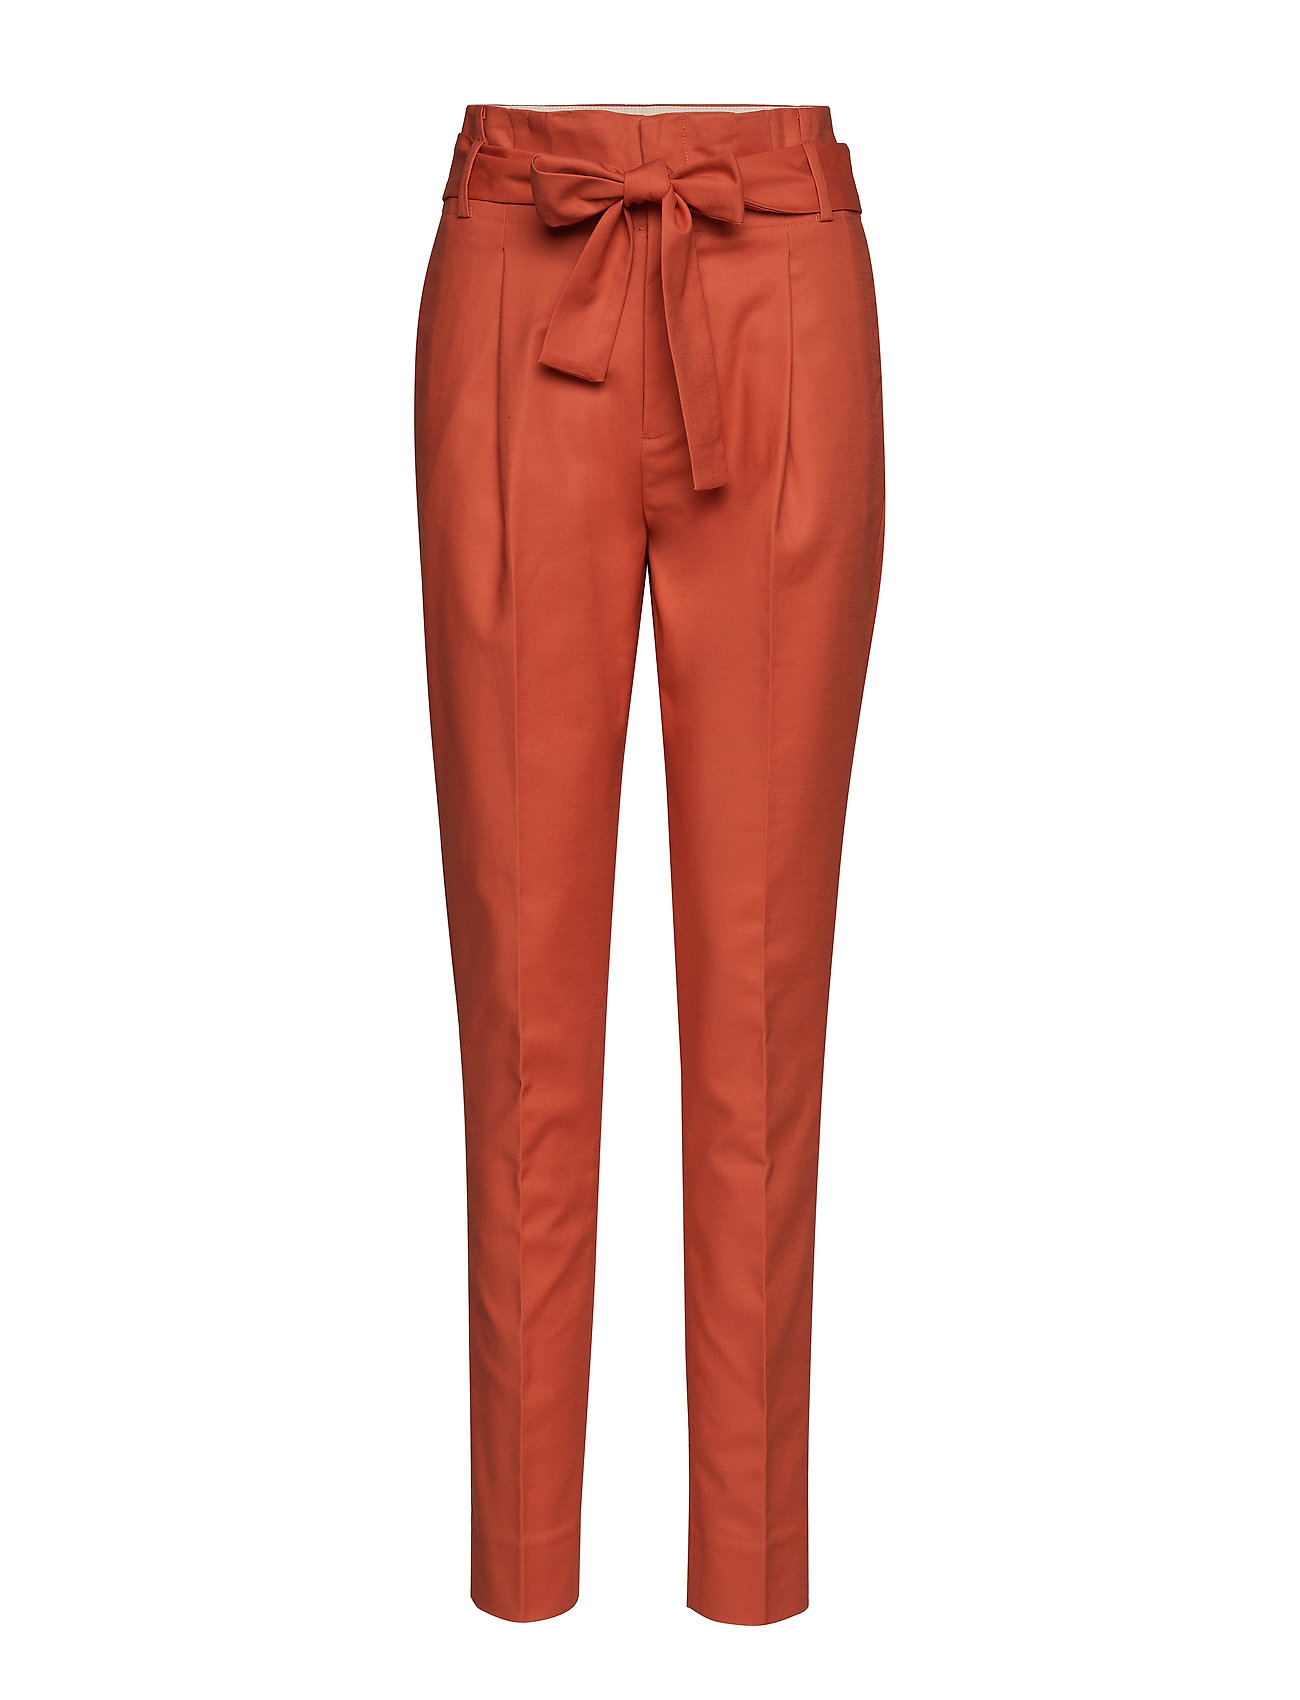 Noa Noa Trousers - MECCA ORANGE